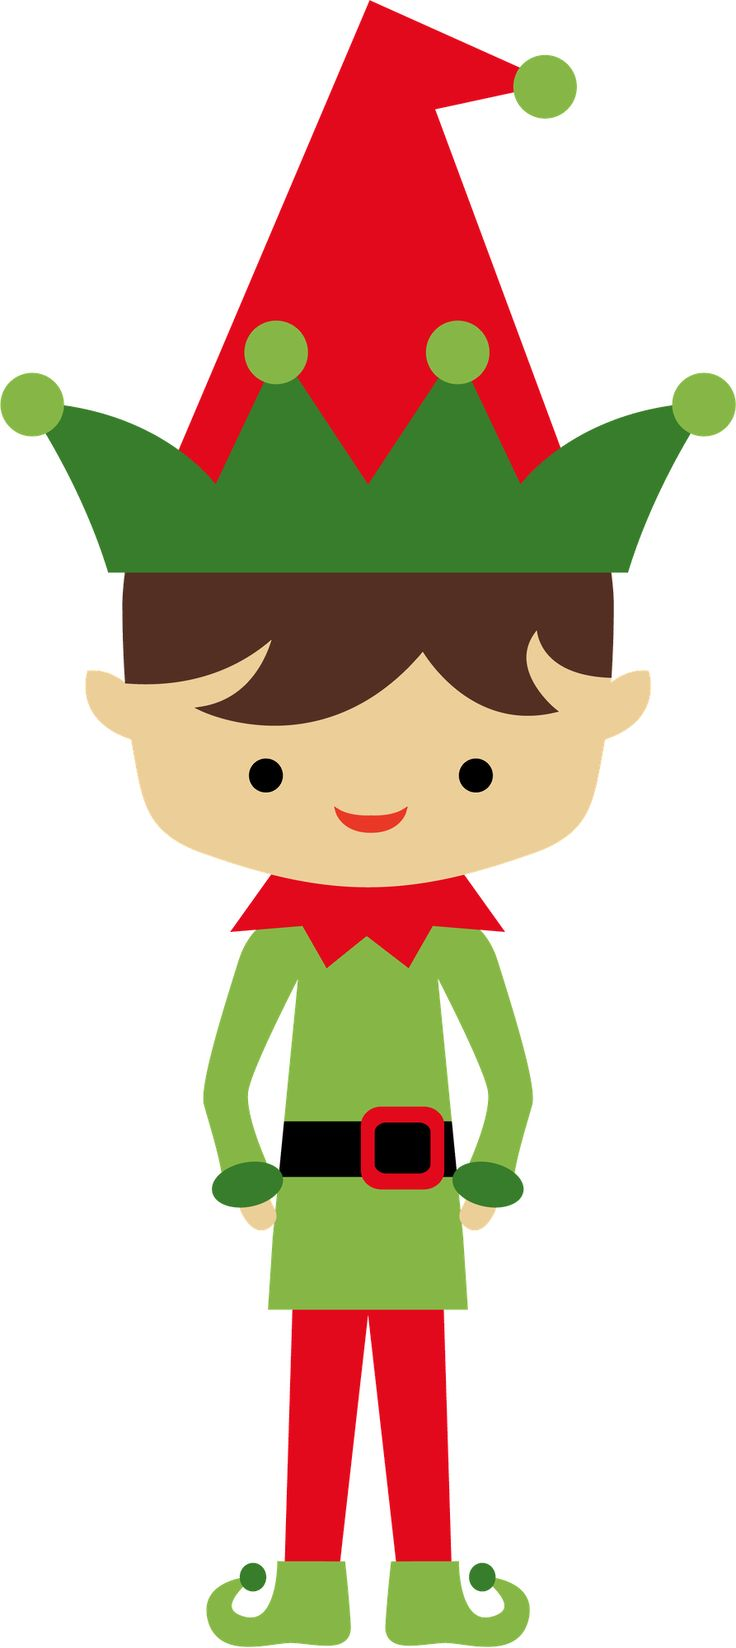 736x1648 Free Christmas Elf Clipart Image